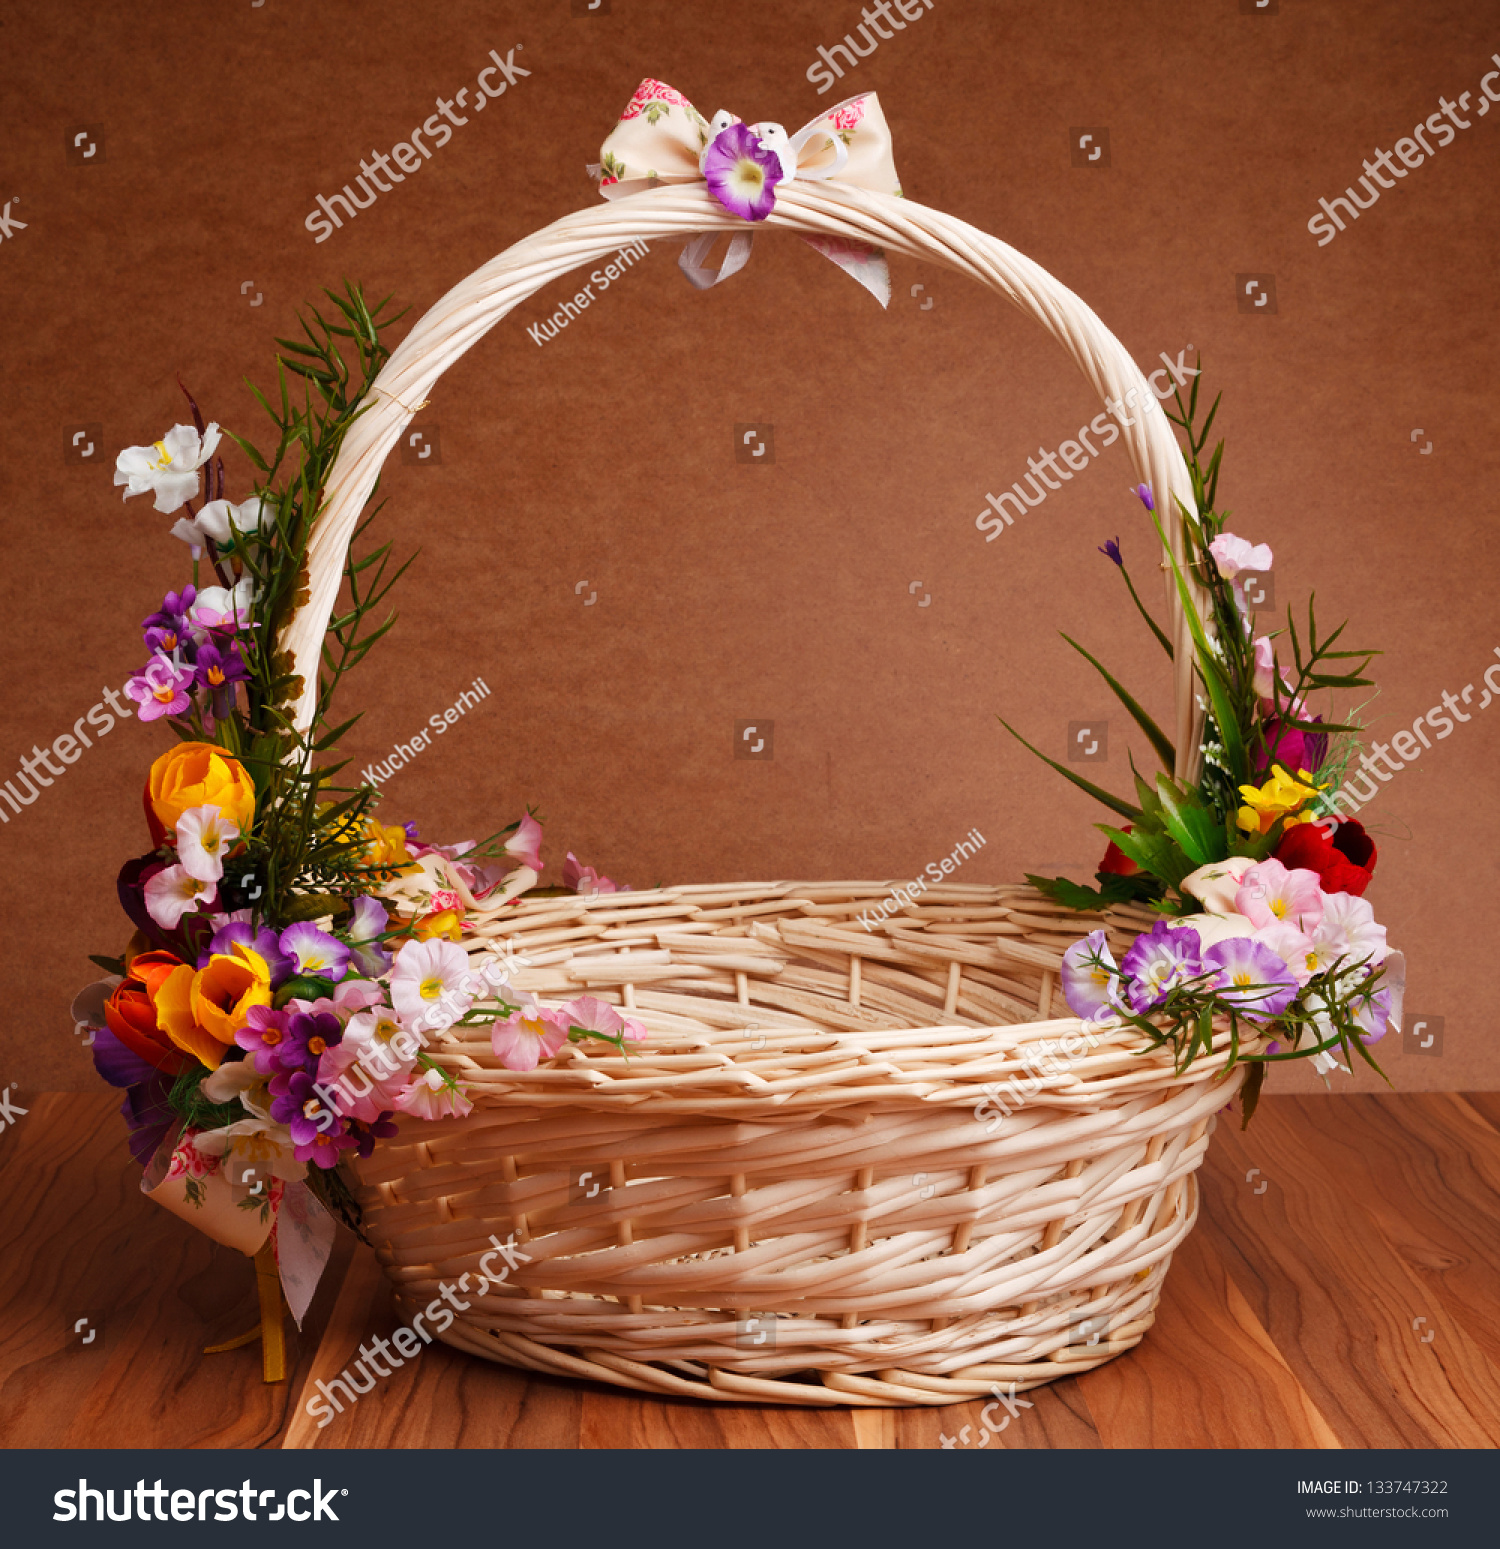 Basket Decorated Flowers On Wooden Table Stock Photo